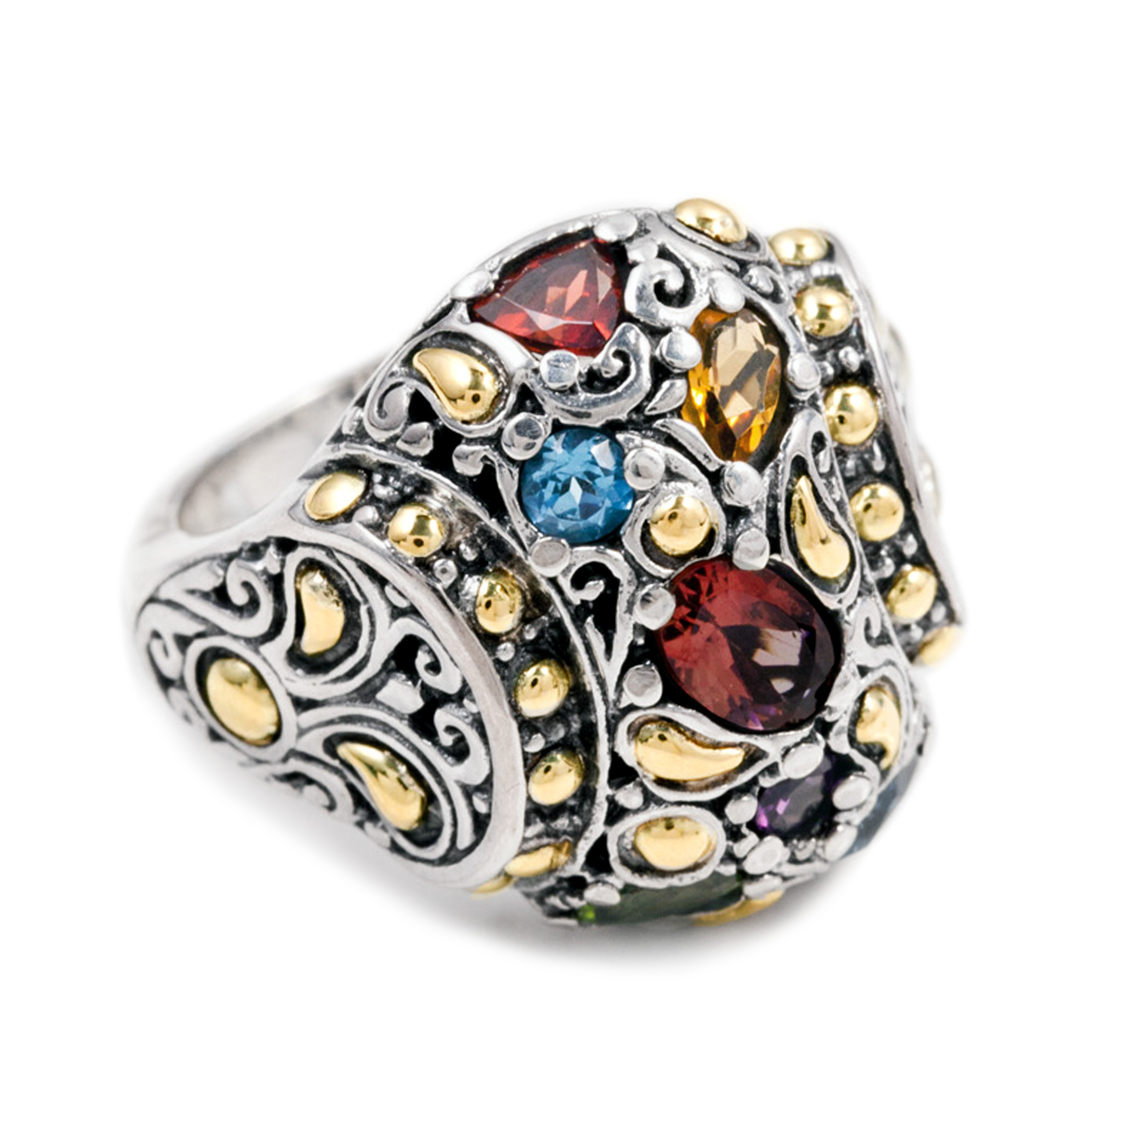 Multi Gemstone Sterling Silver Ring with 18K Gold Accents